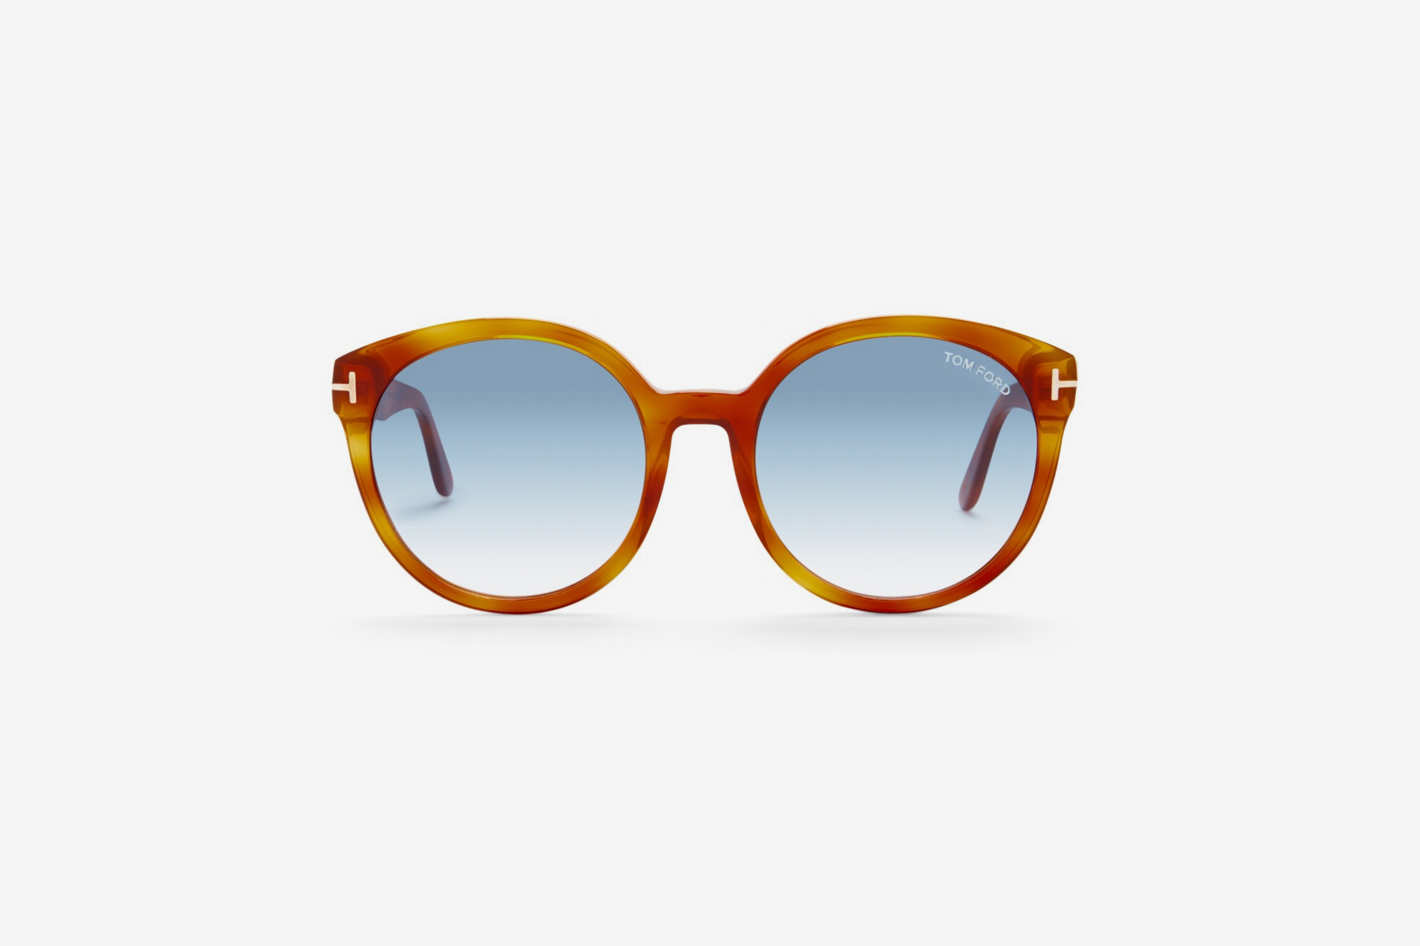 Tom Ford 55mm Oversized Sunglasses